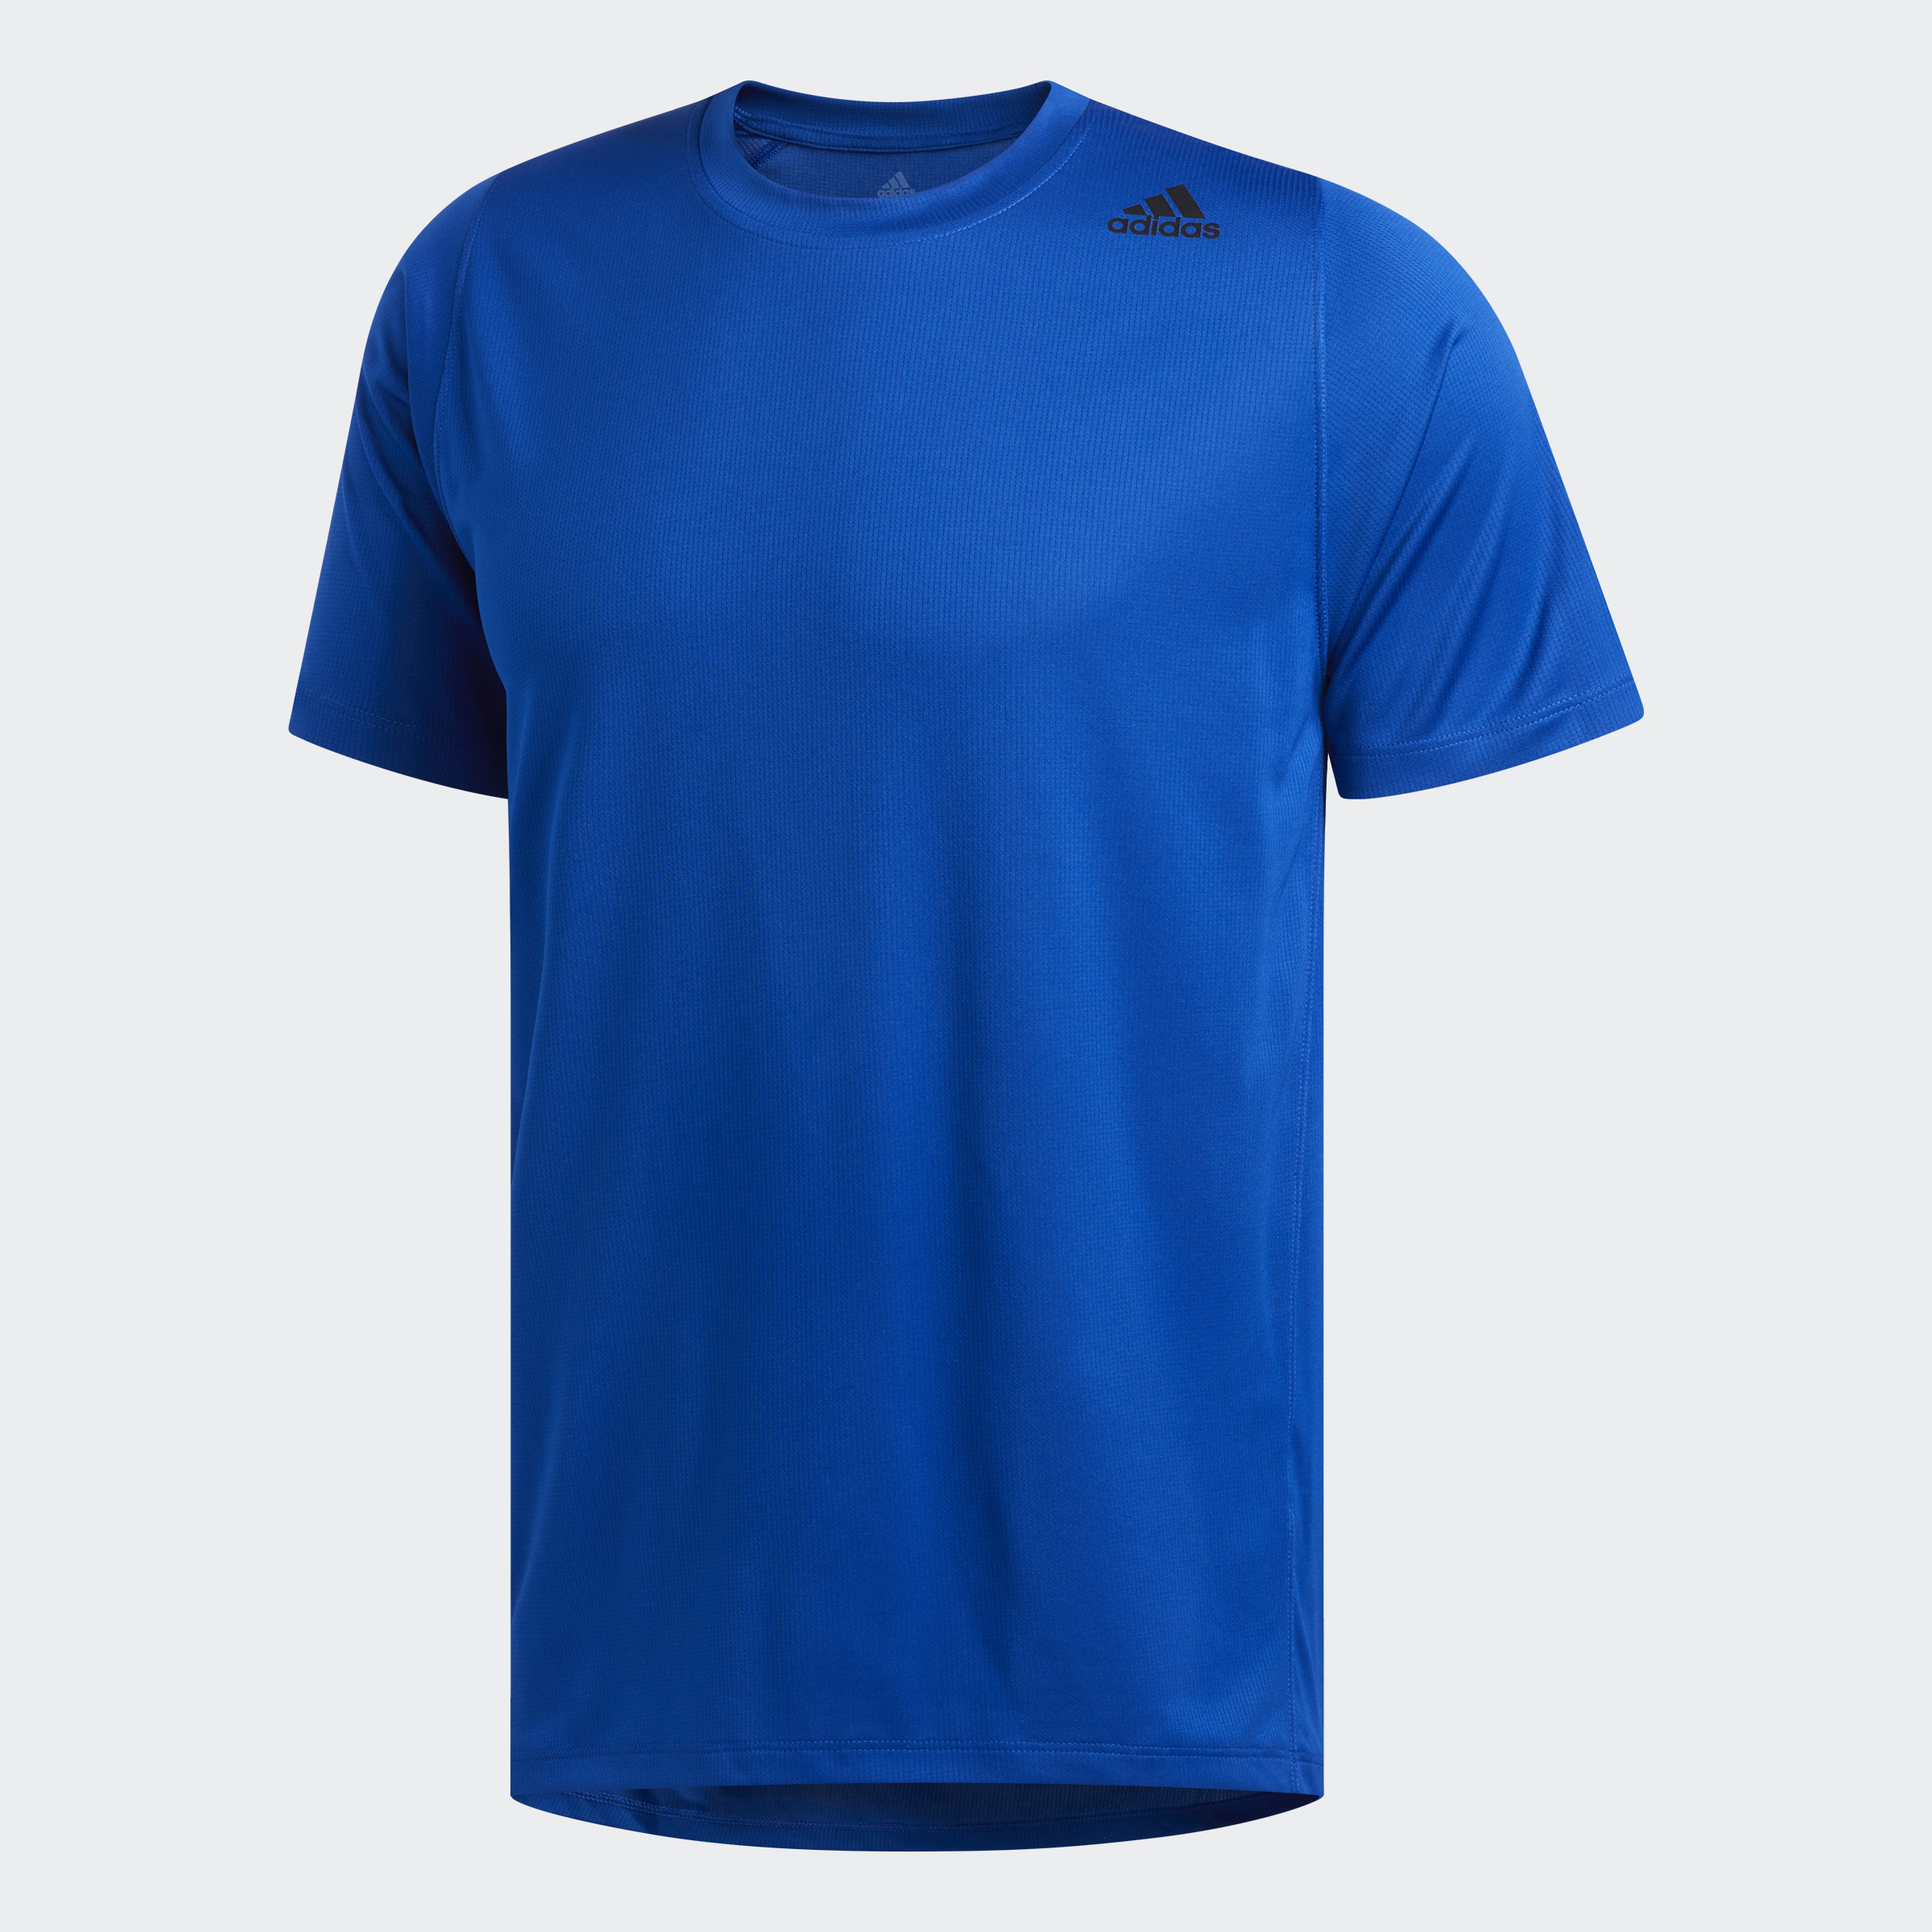 adidas-FreeLift-Sport-Fitted-3-Stripes-Tee-Men-039-s-Shirts miniature 48